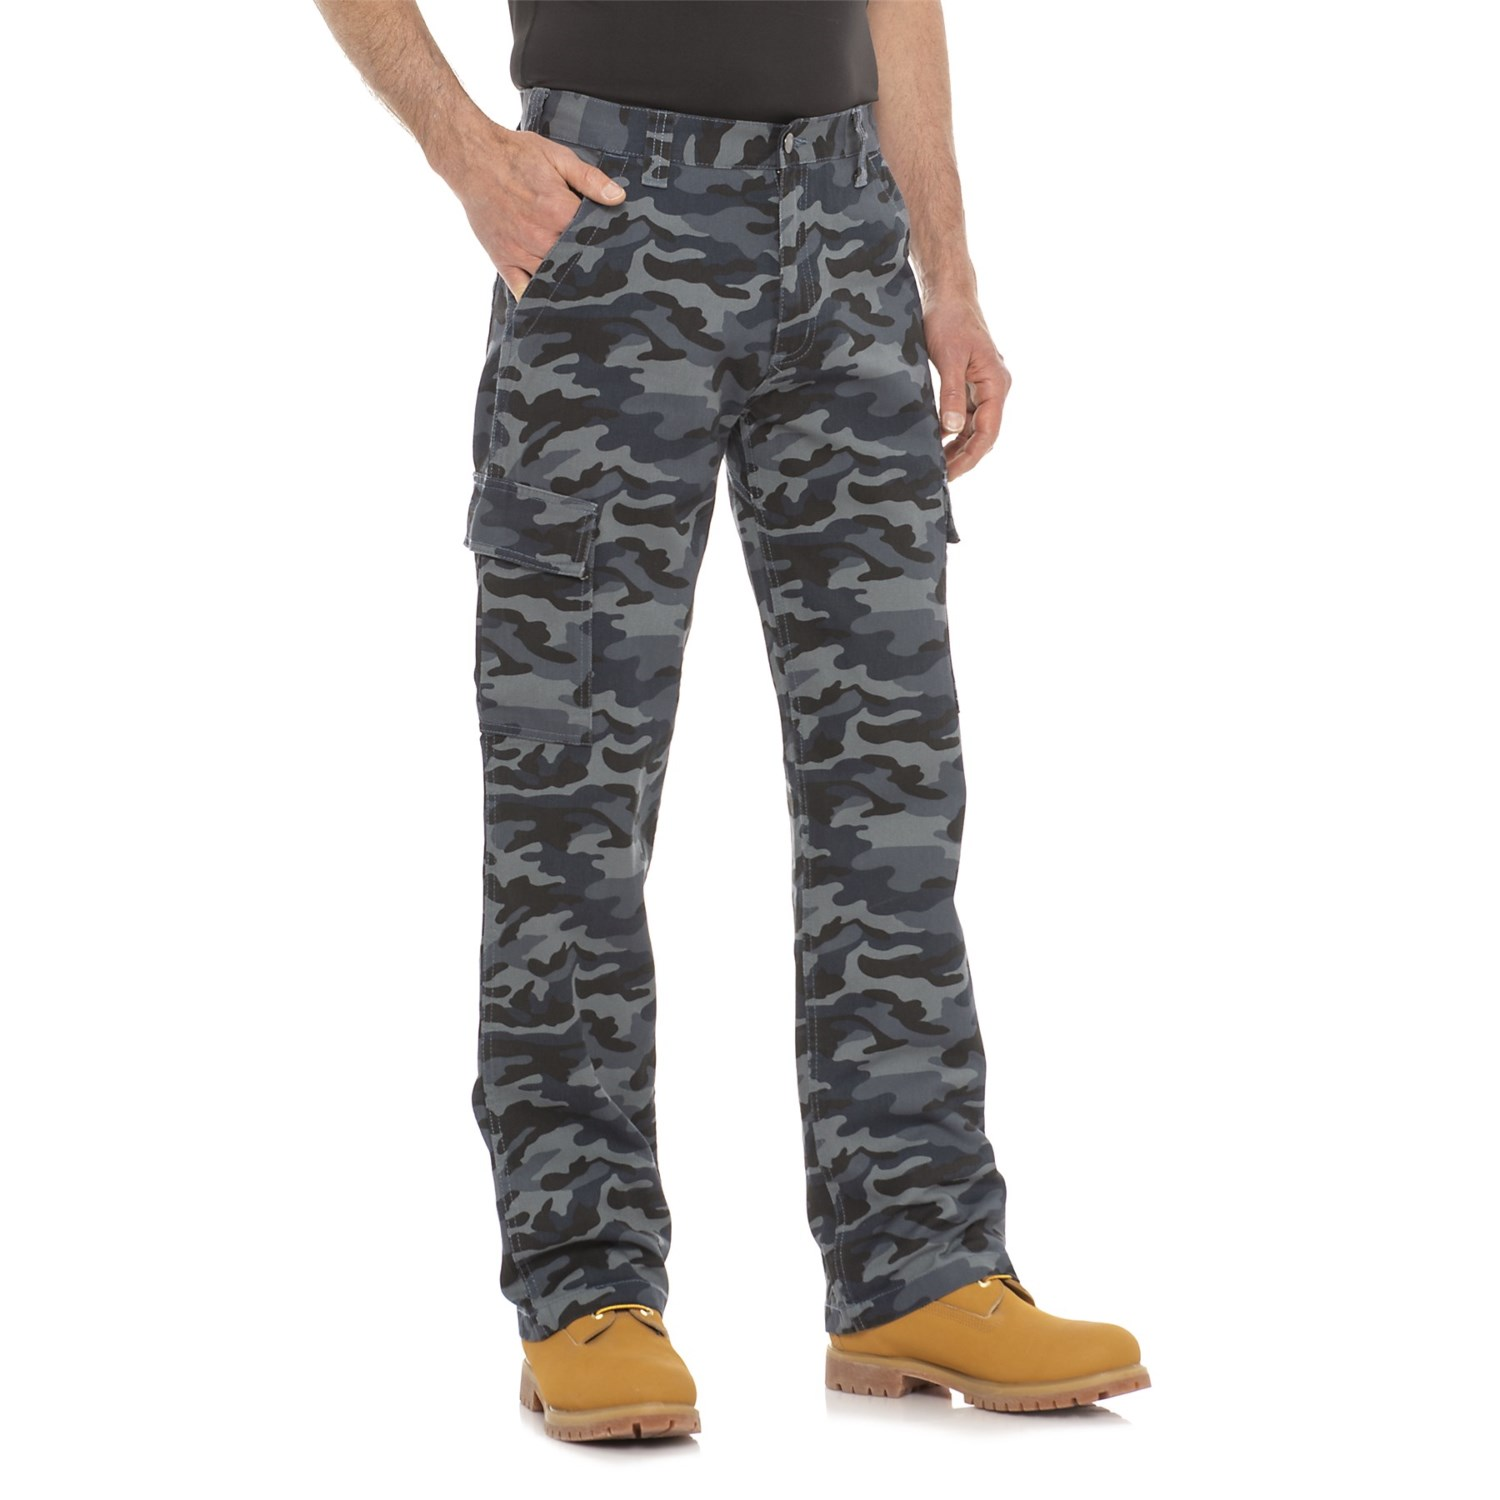 high quality materials find workmanship look out for Work King Twill Camo Cargo Pants (For Men)